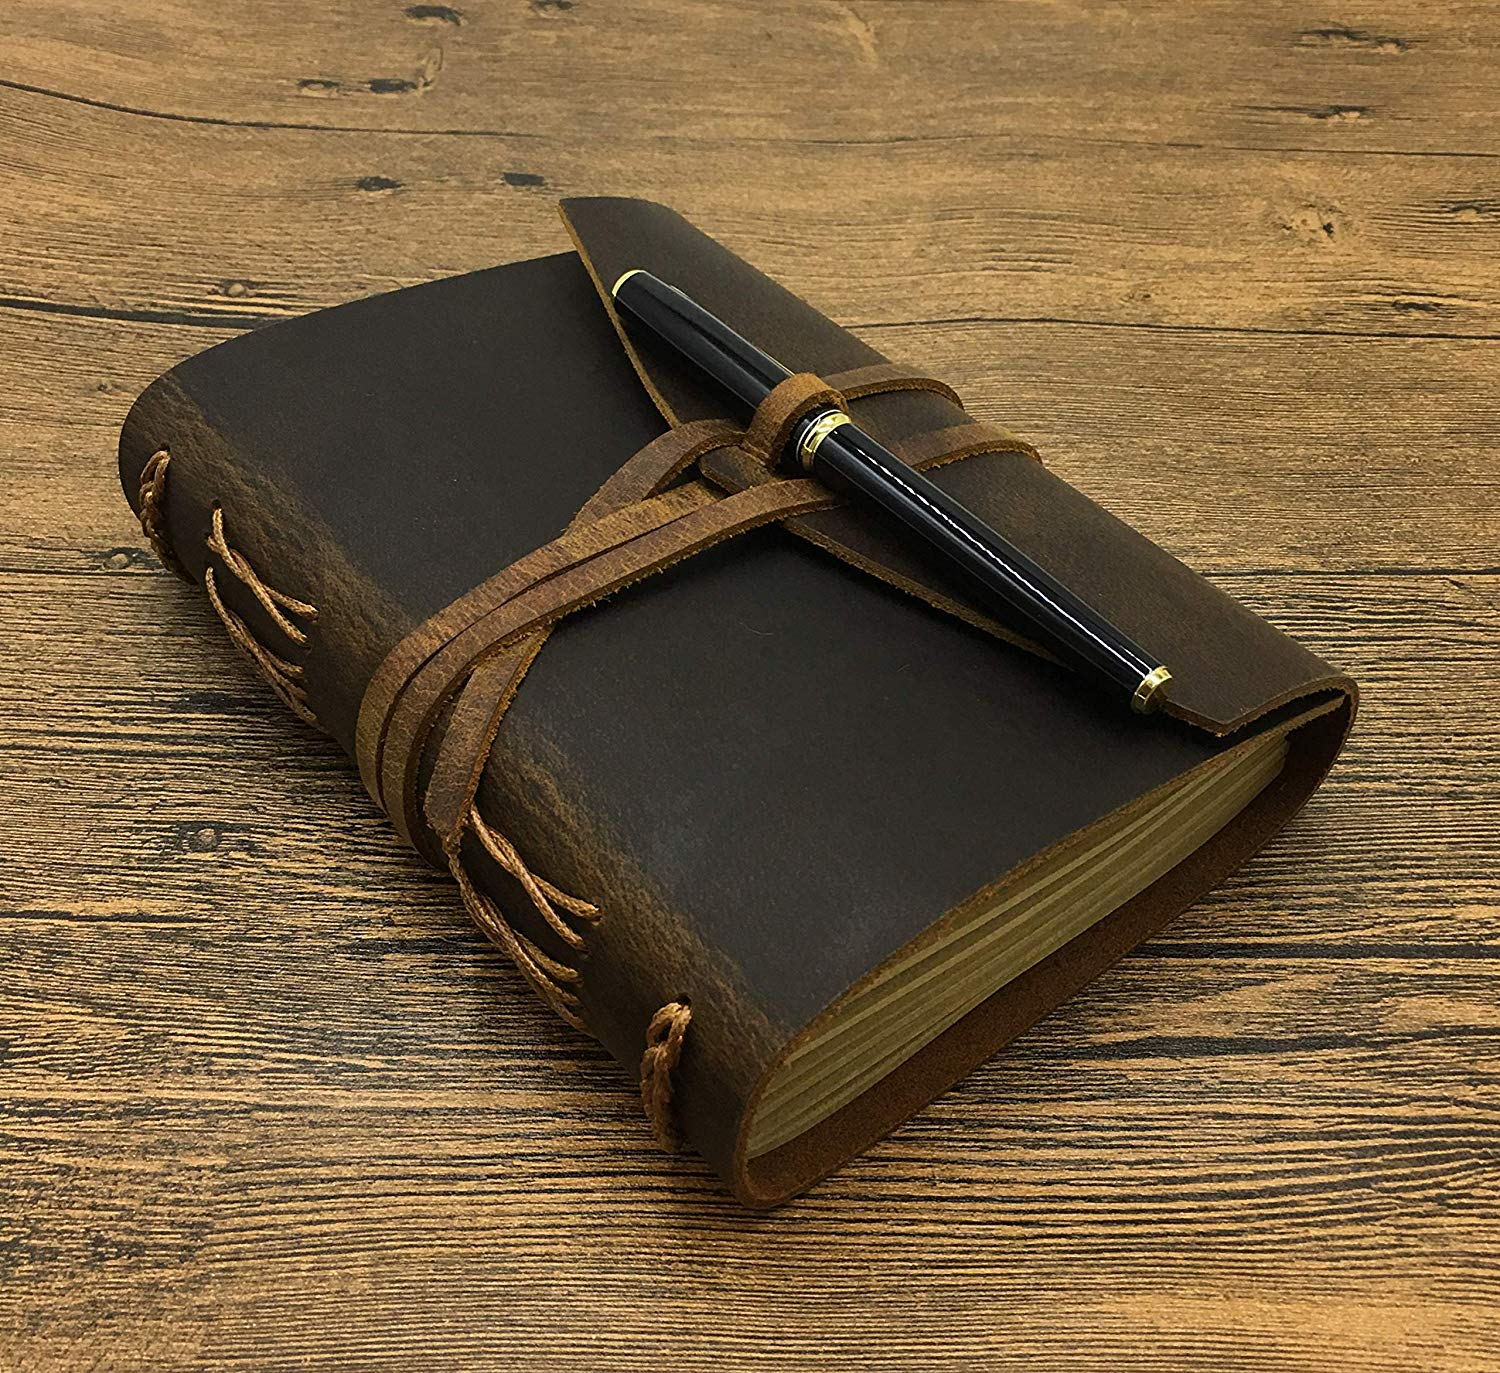 Leathe journal - necessary thing to pack for any trip